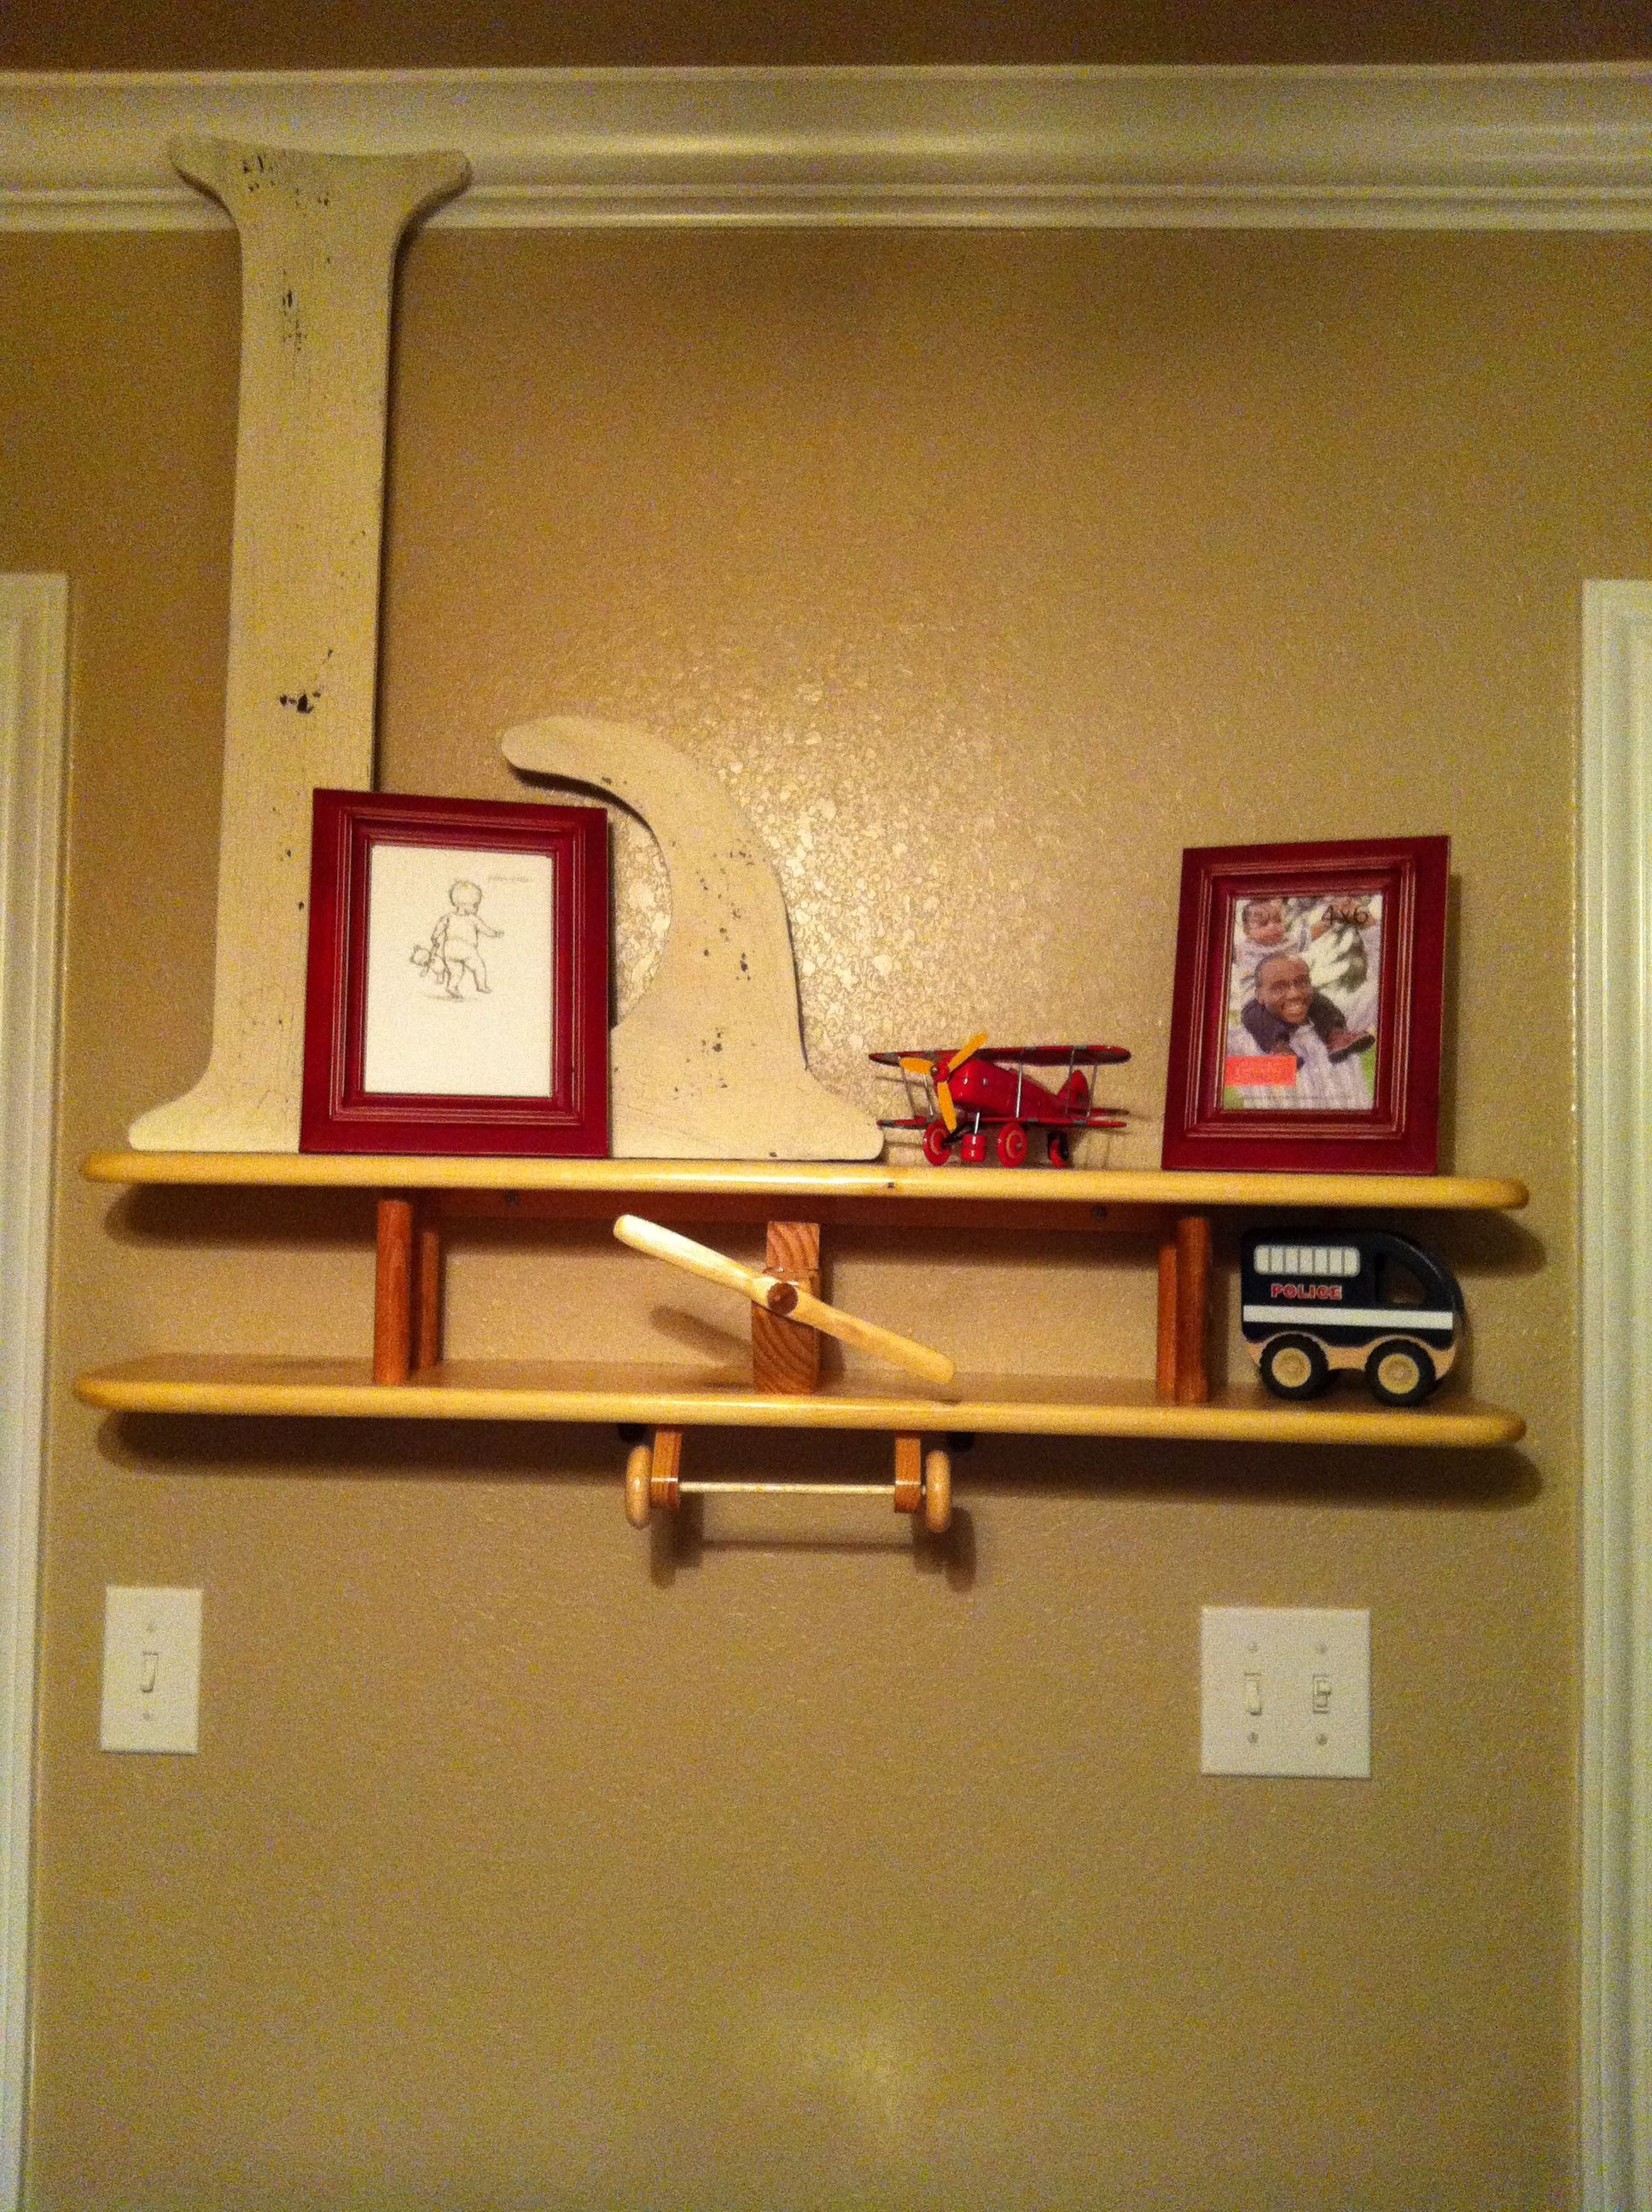 This airplane shelf, which is COOL, was a gift for Landon at one of his baby showers! The L was a find at one of my favorite spots, Canton.